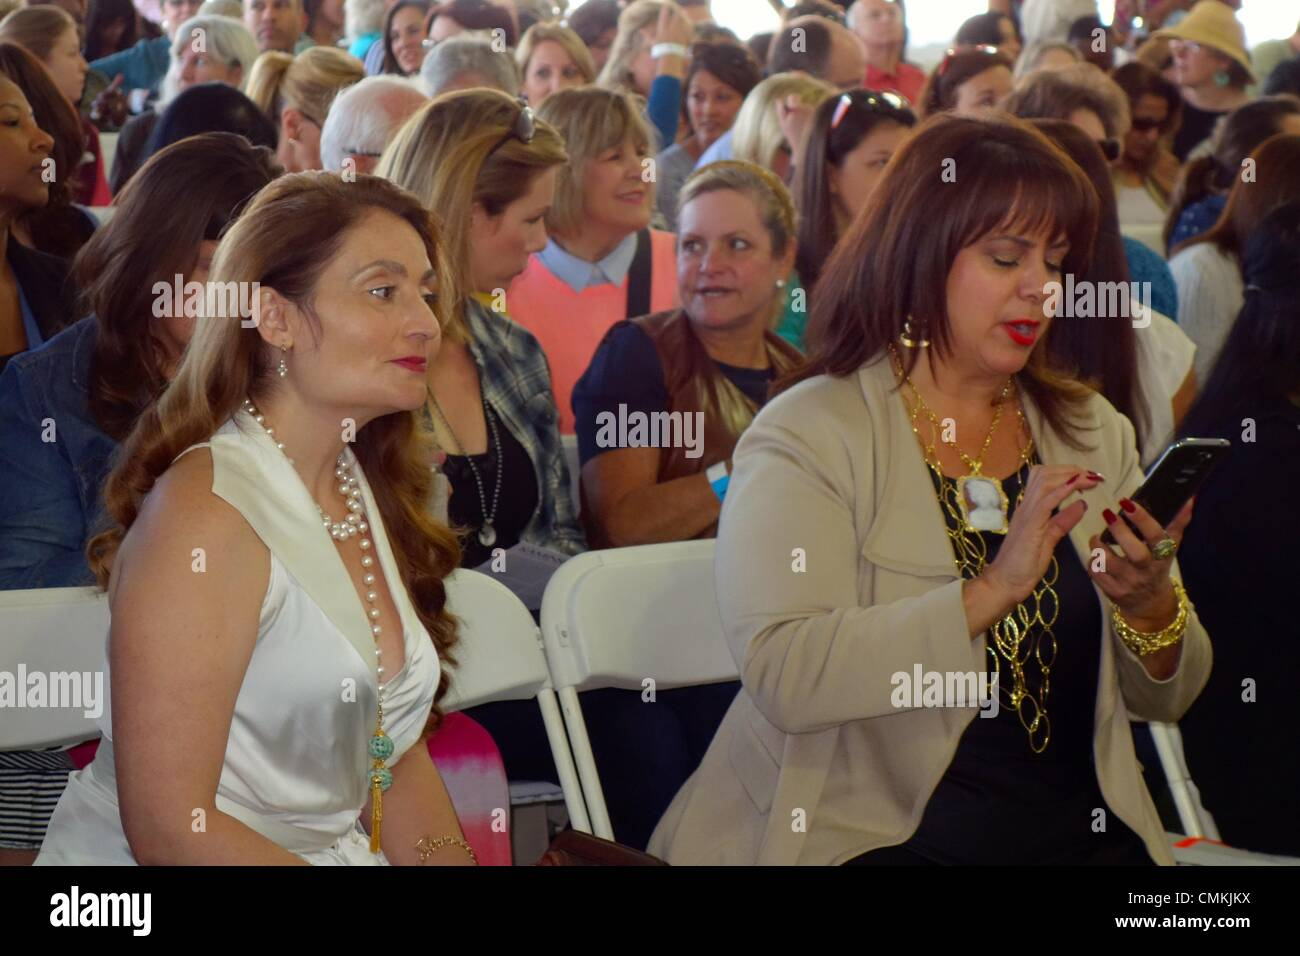 Oprah's auction - bidders in the VIP section of the audience - Stock Image